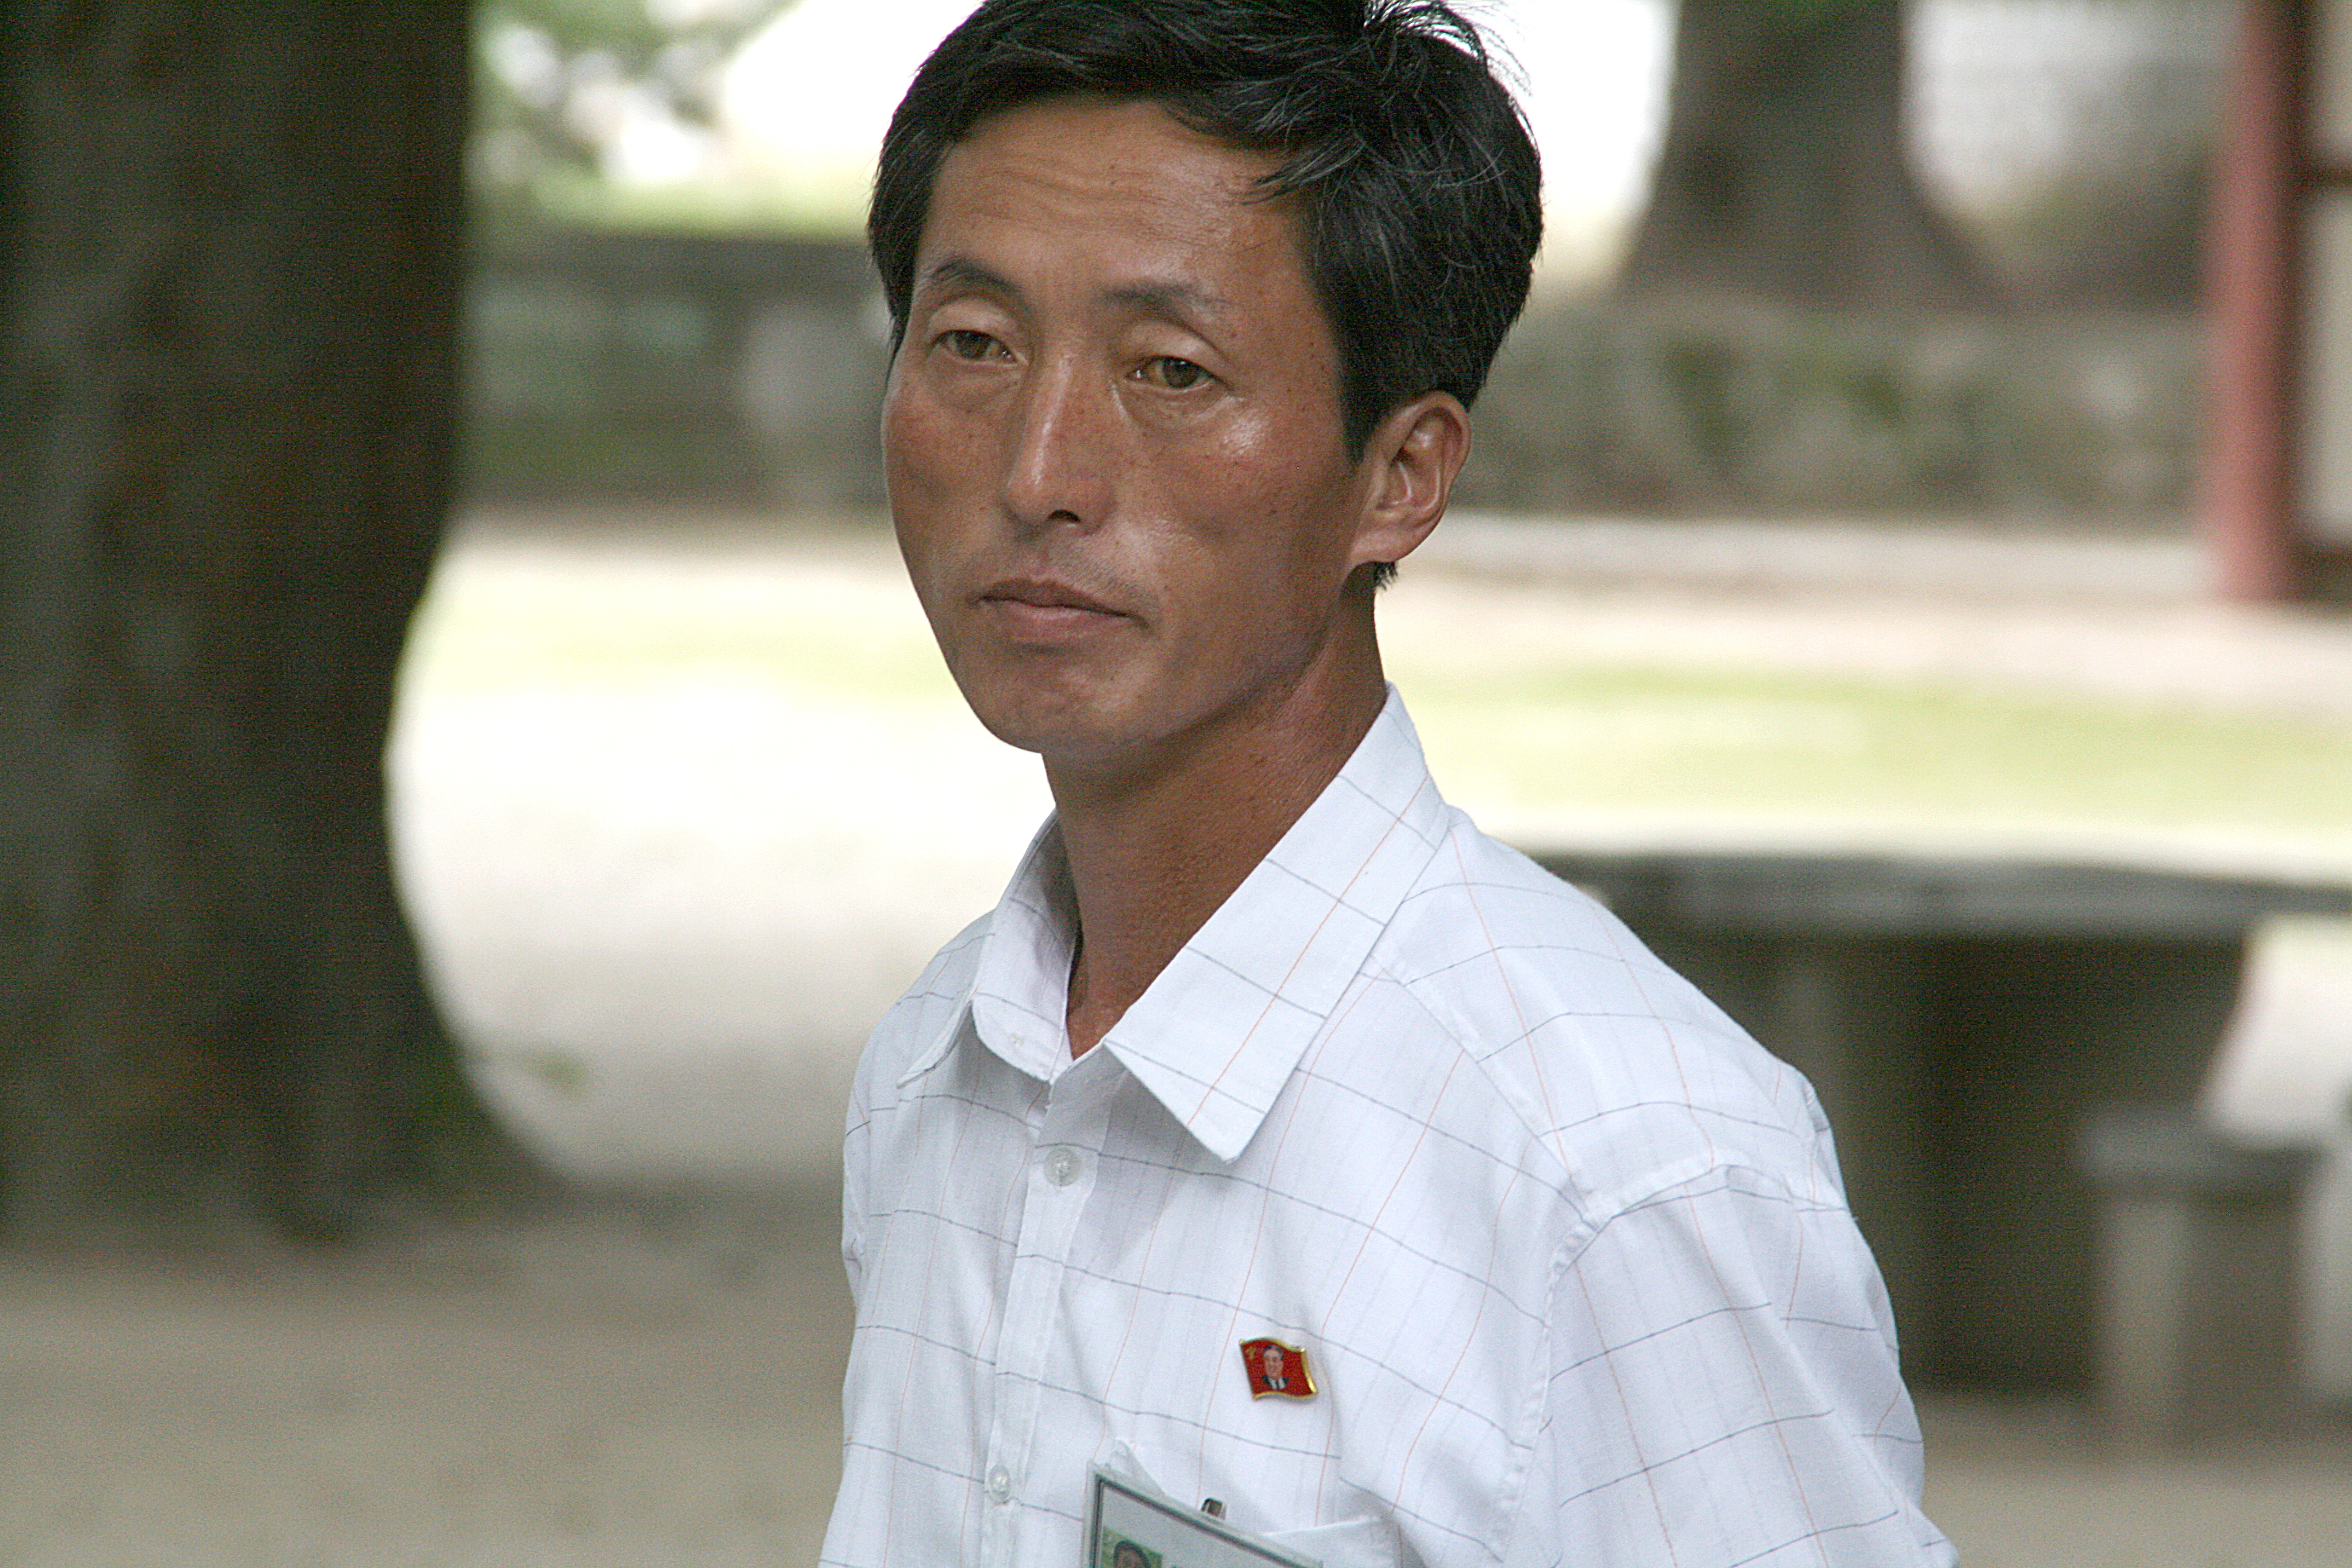 A Prayer From A North Korean Christian Just Before Going